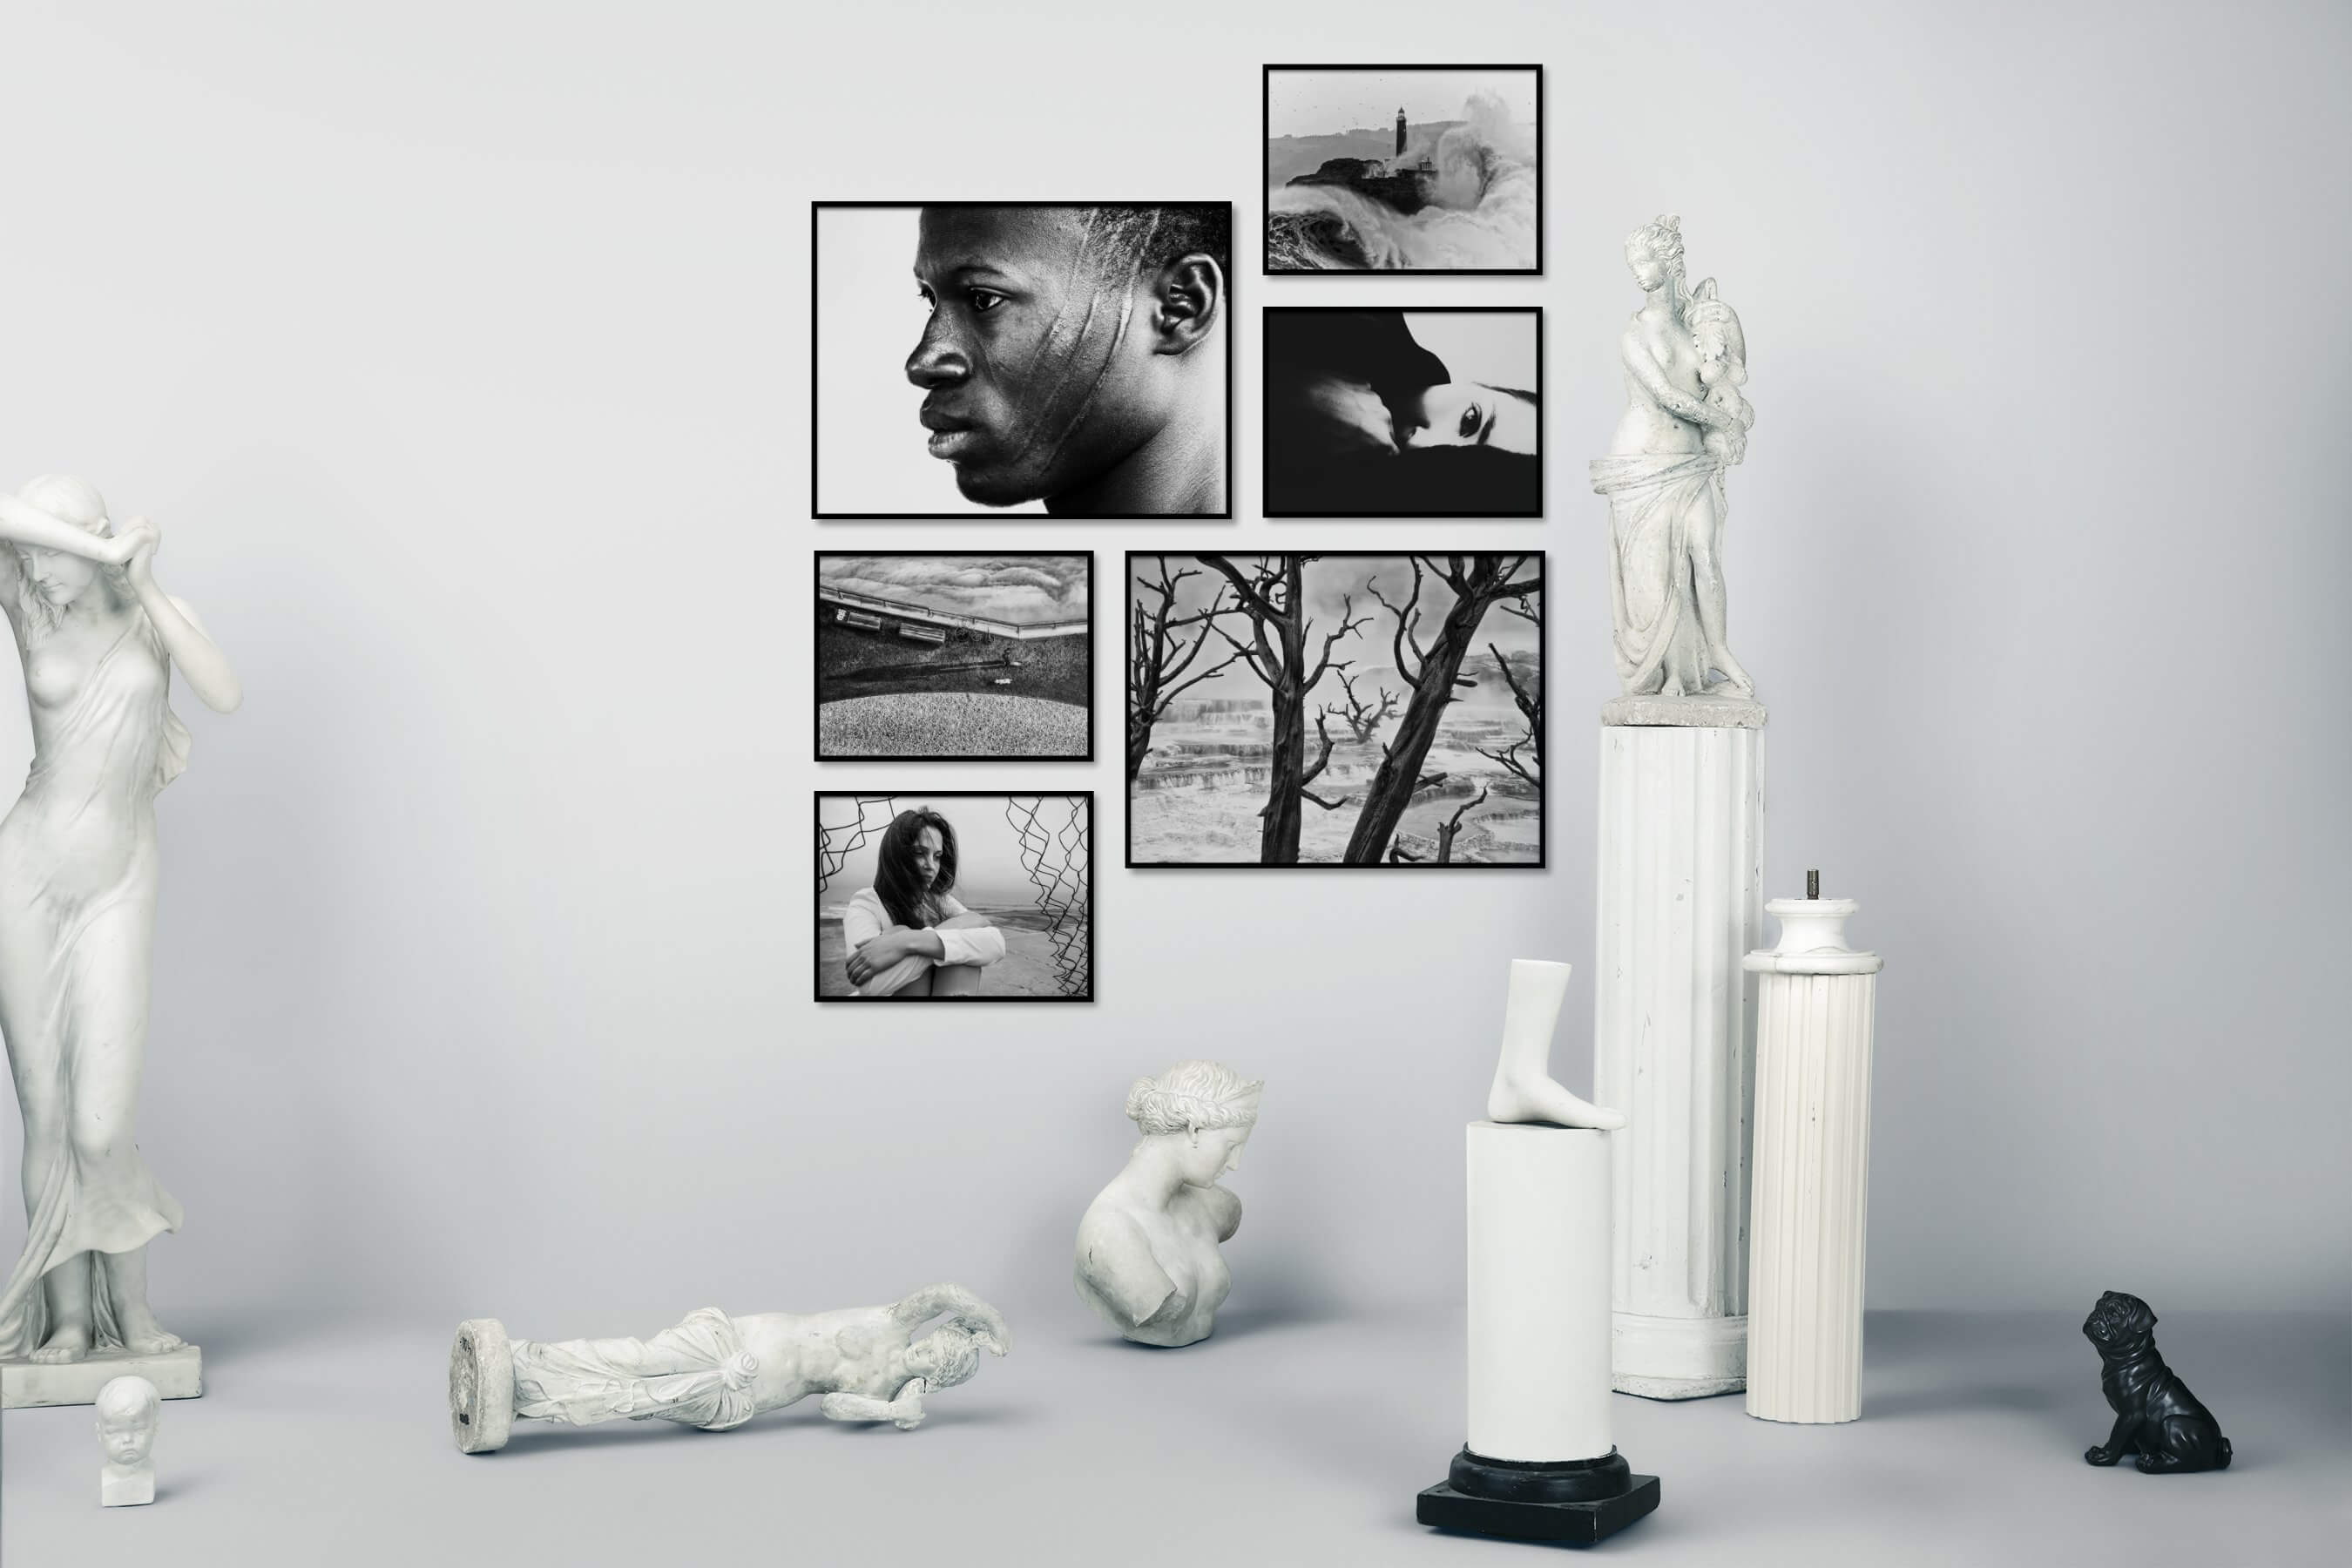 Gallery wall idea with six framed pictures arranged on a wall depicting Fashion & Beauty, Black & White, Artsy, For the Moderate, Nature, and Beach & Water